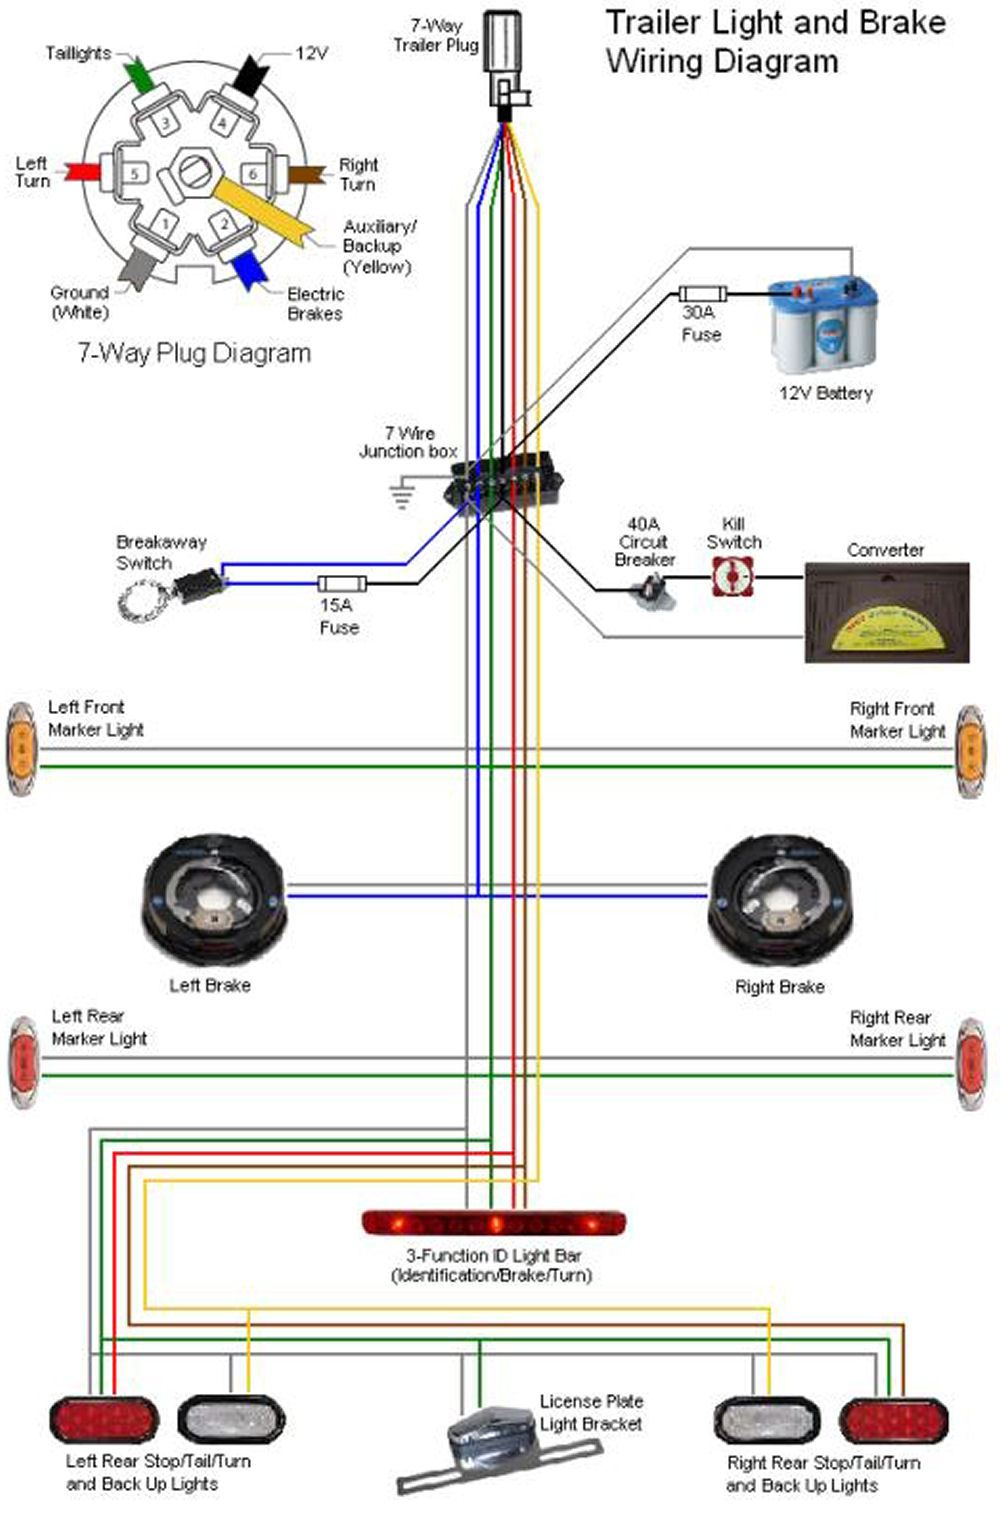 Auxiliary With Tail Lights And Electric Brakes 7 Pin Trailer Wiring - Trailer Wiring Diagram For Electric Brakes